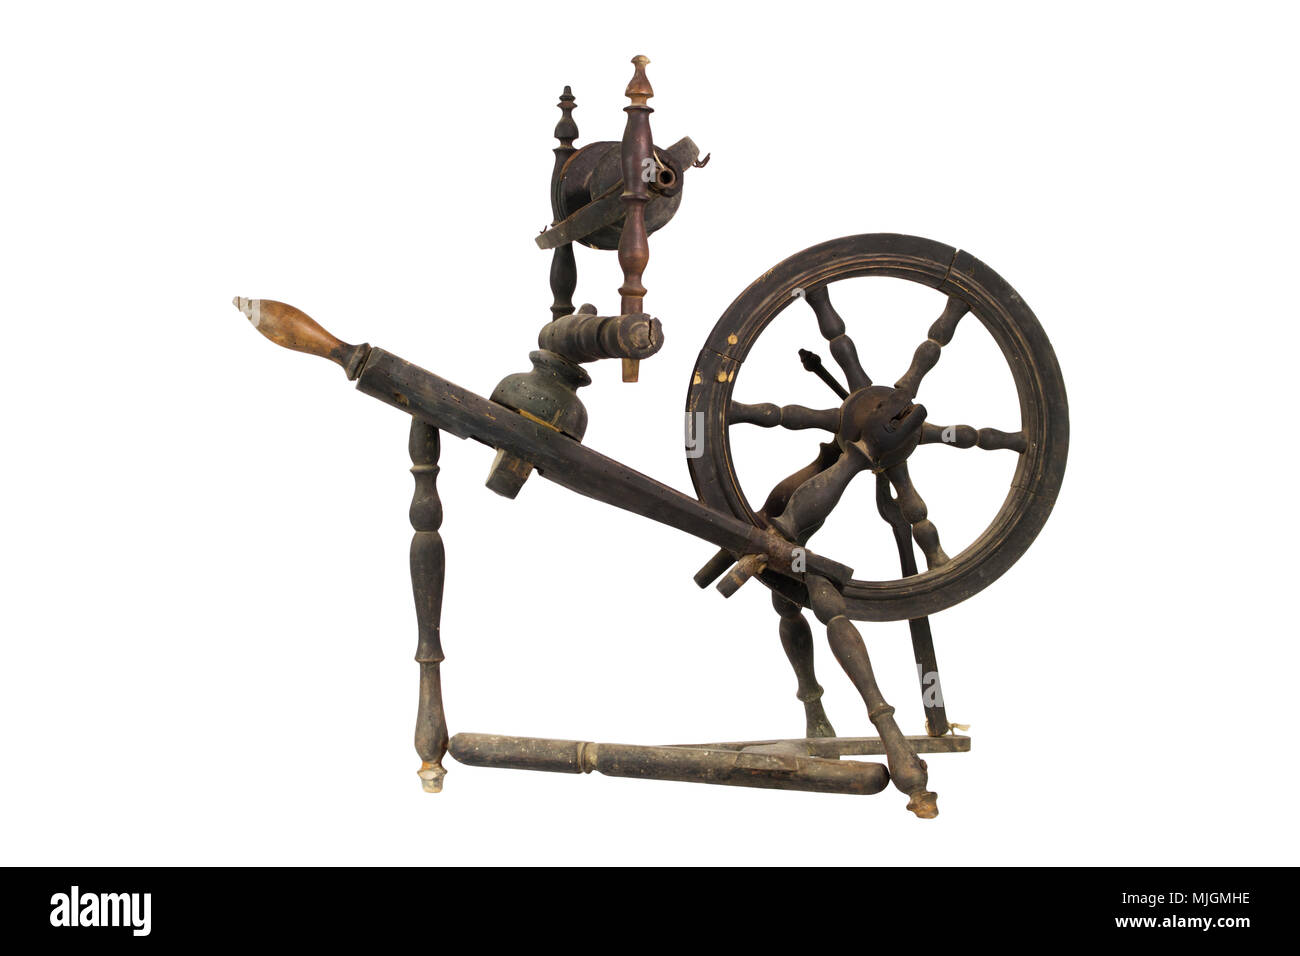 Spinning Wheel For Making Yarn From Wool Fibers. Vintage Rustic Equipment Stock Photo